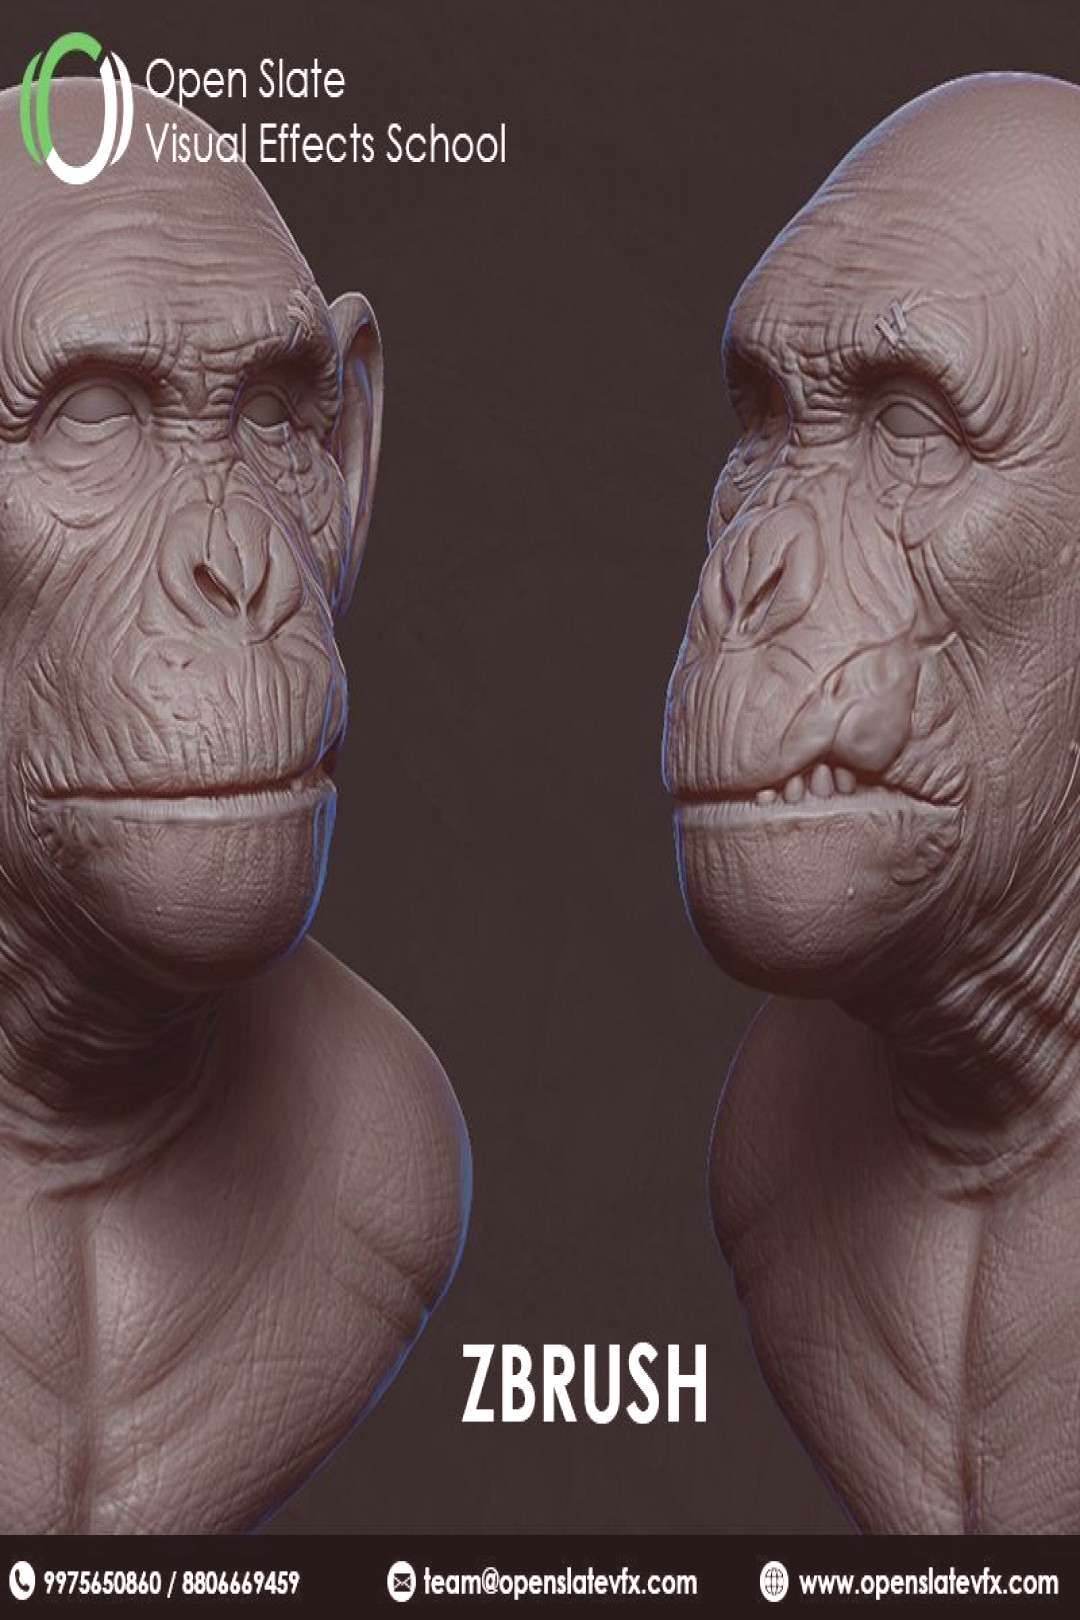 ZBrush allows you to express your creativity in a natural way, giving you powerful tools to create